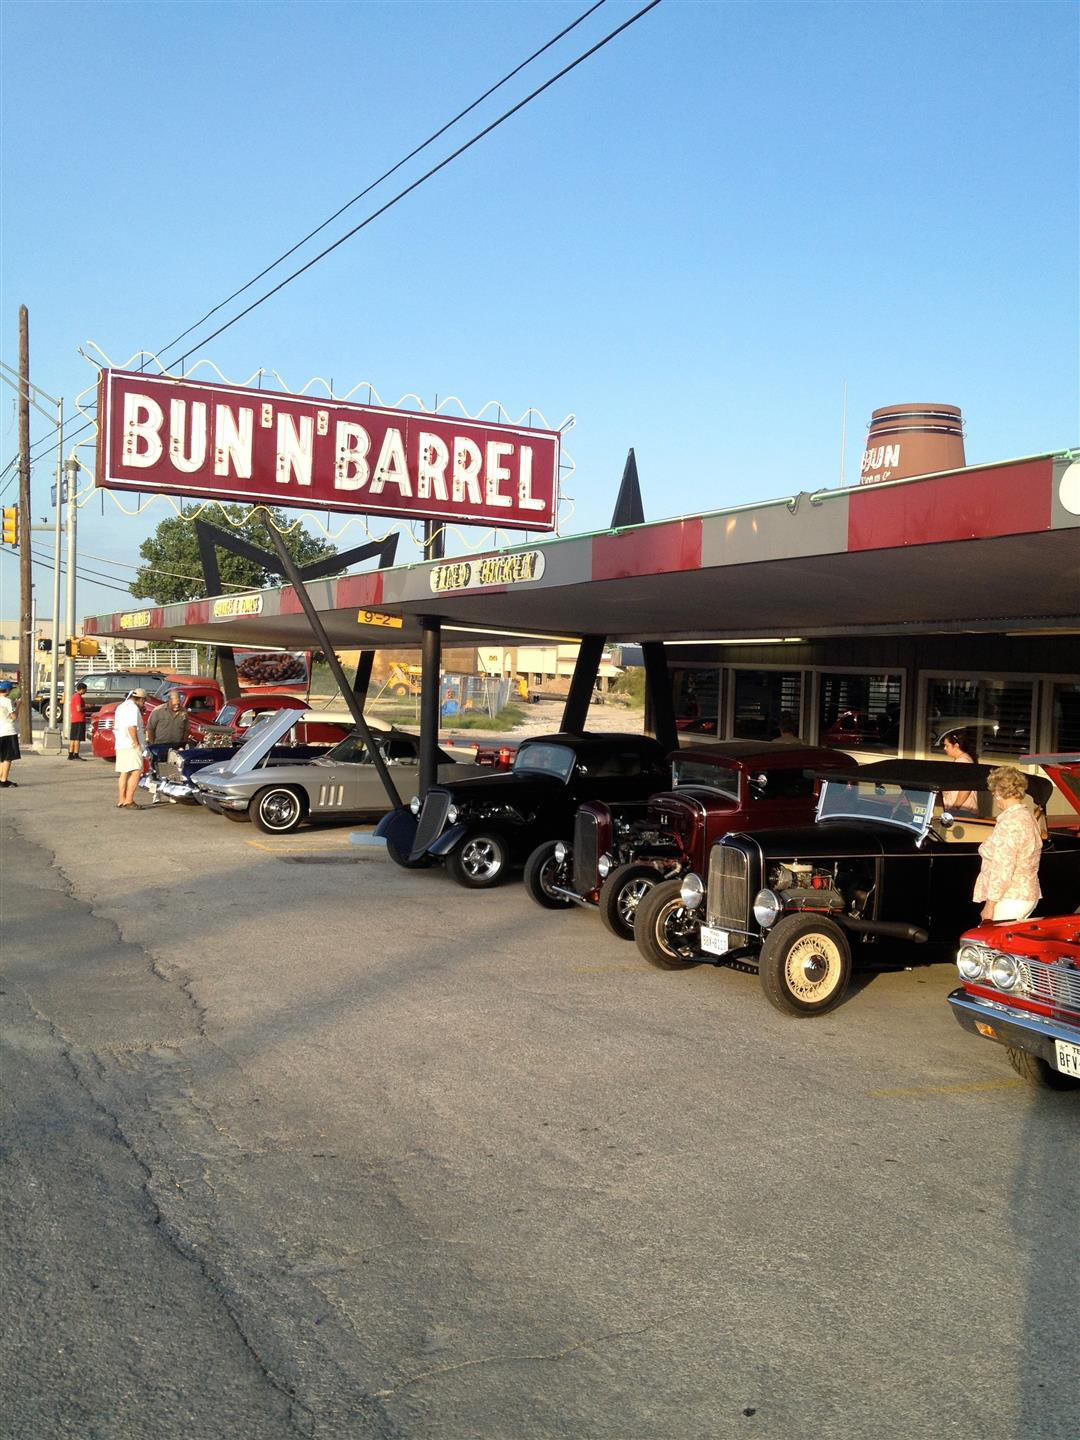 Bun-N-Barrel outdoor carhop with original sign